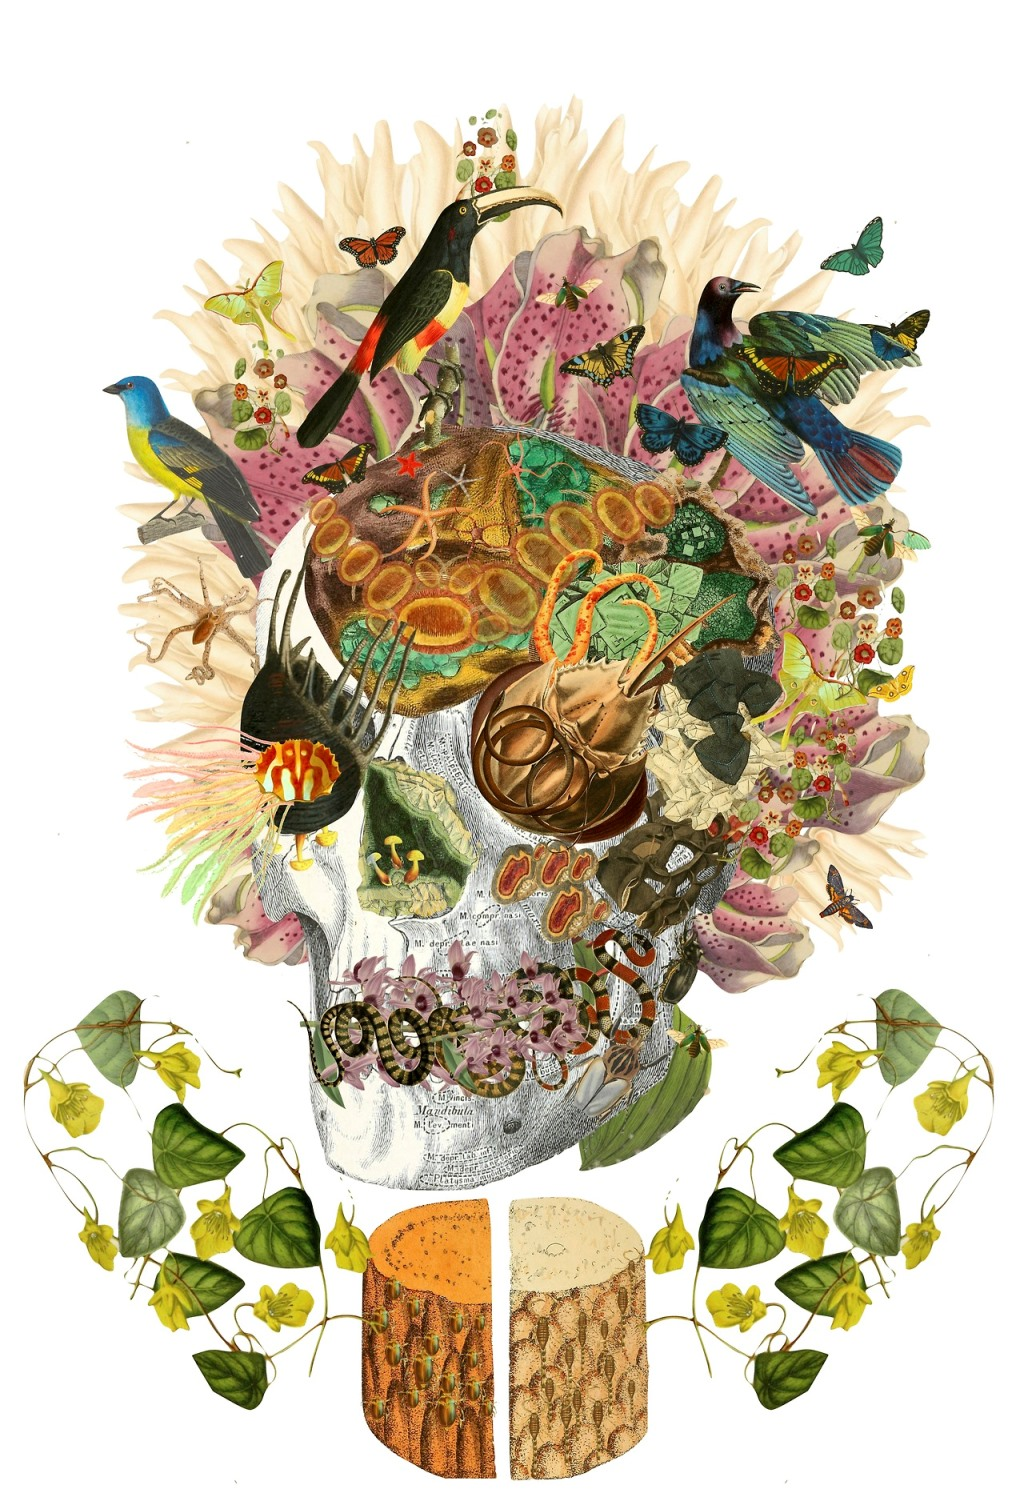 Collage art by Travis Bedel - The re:art